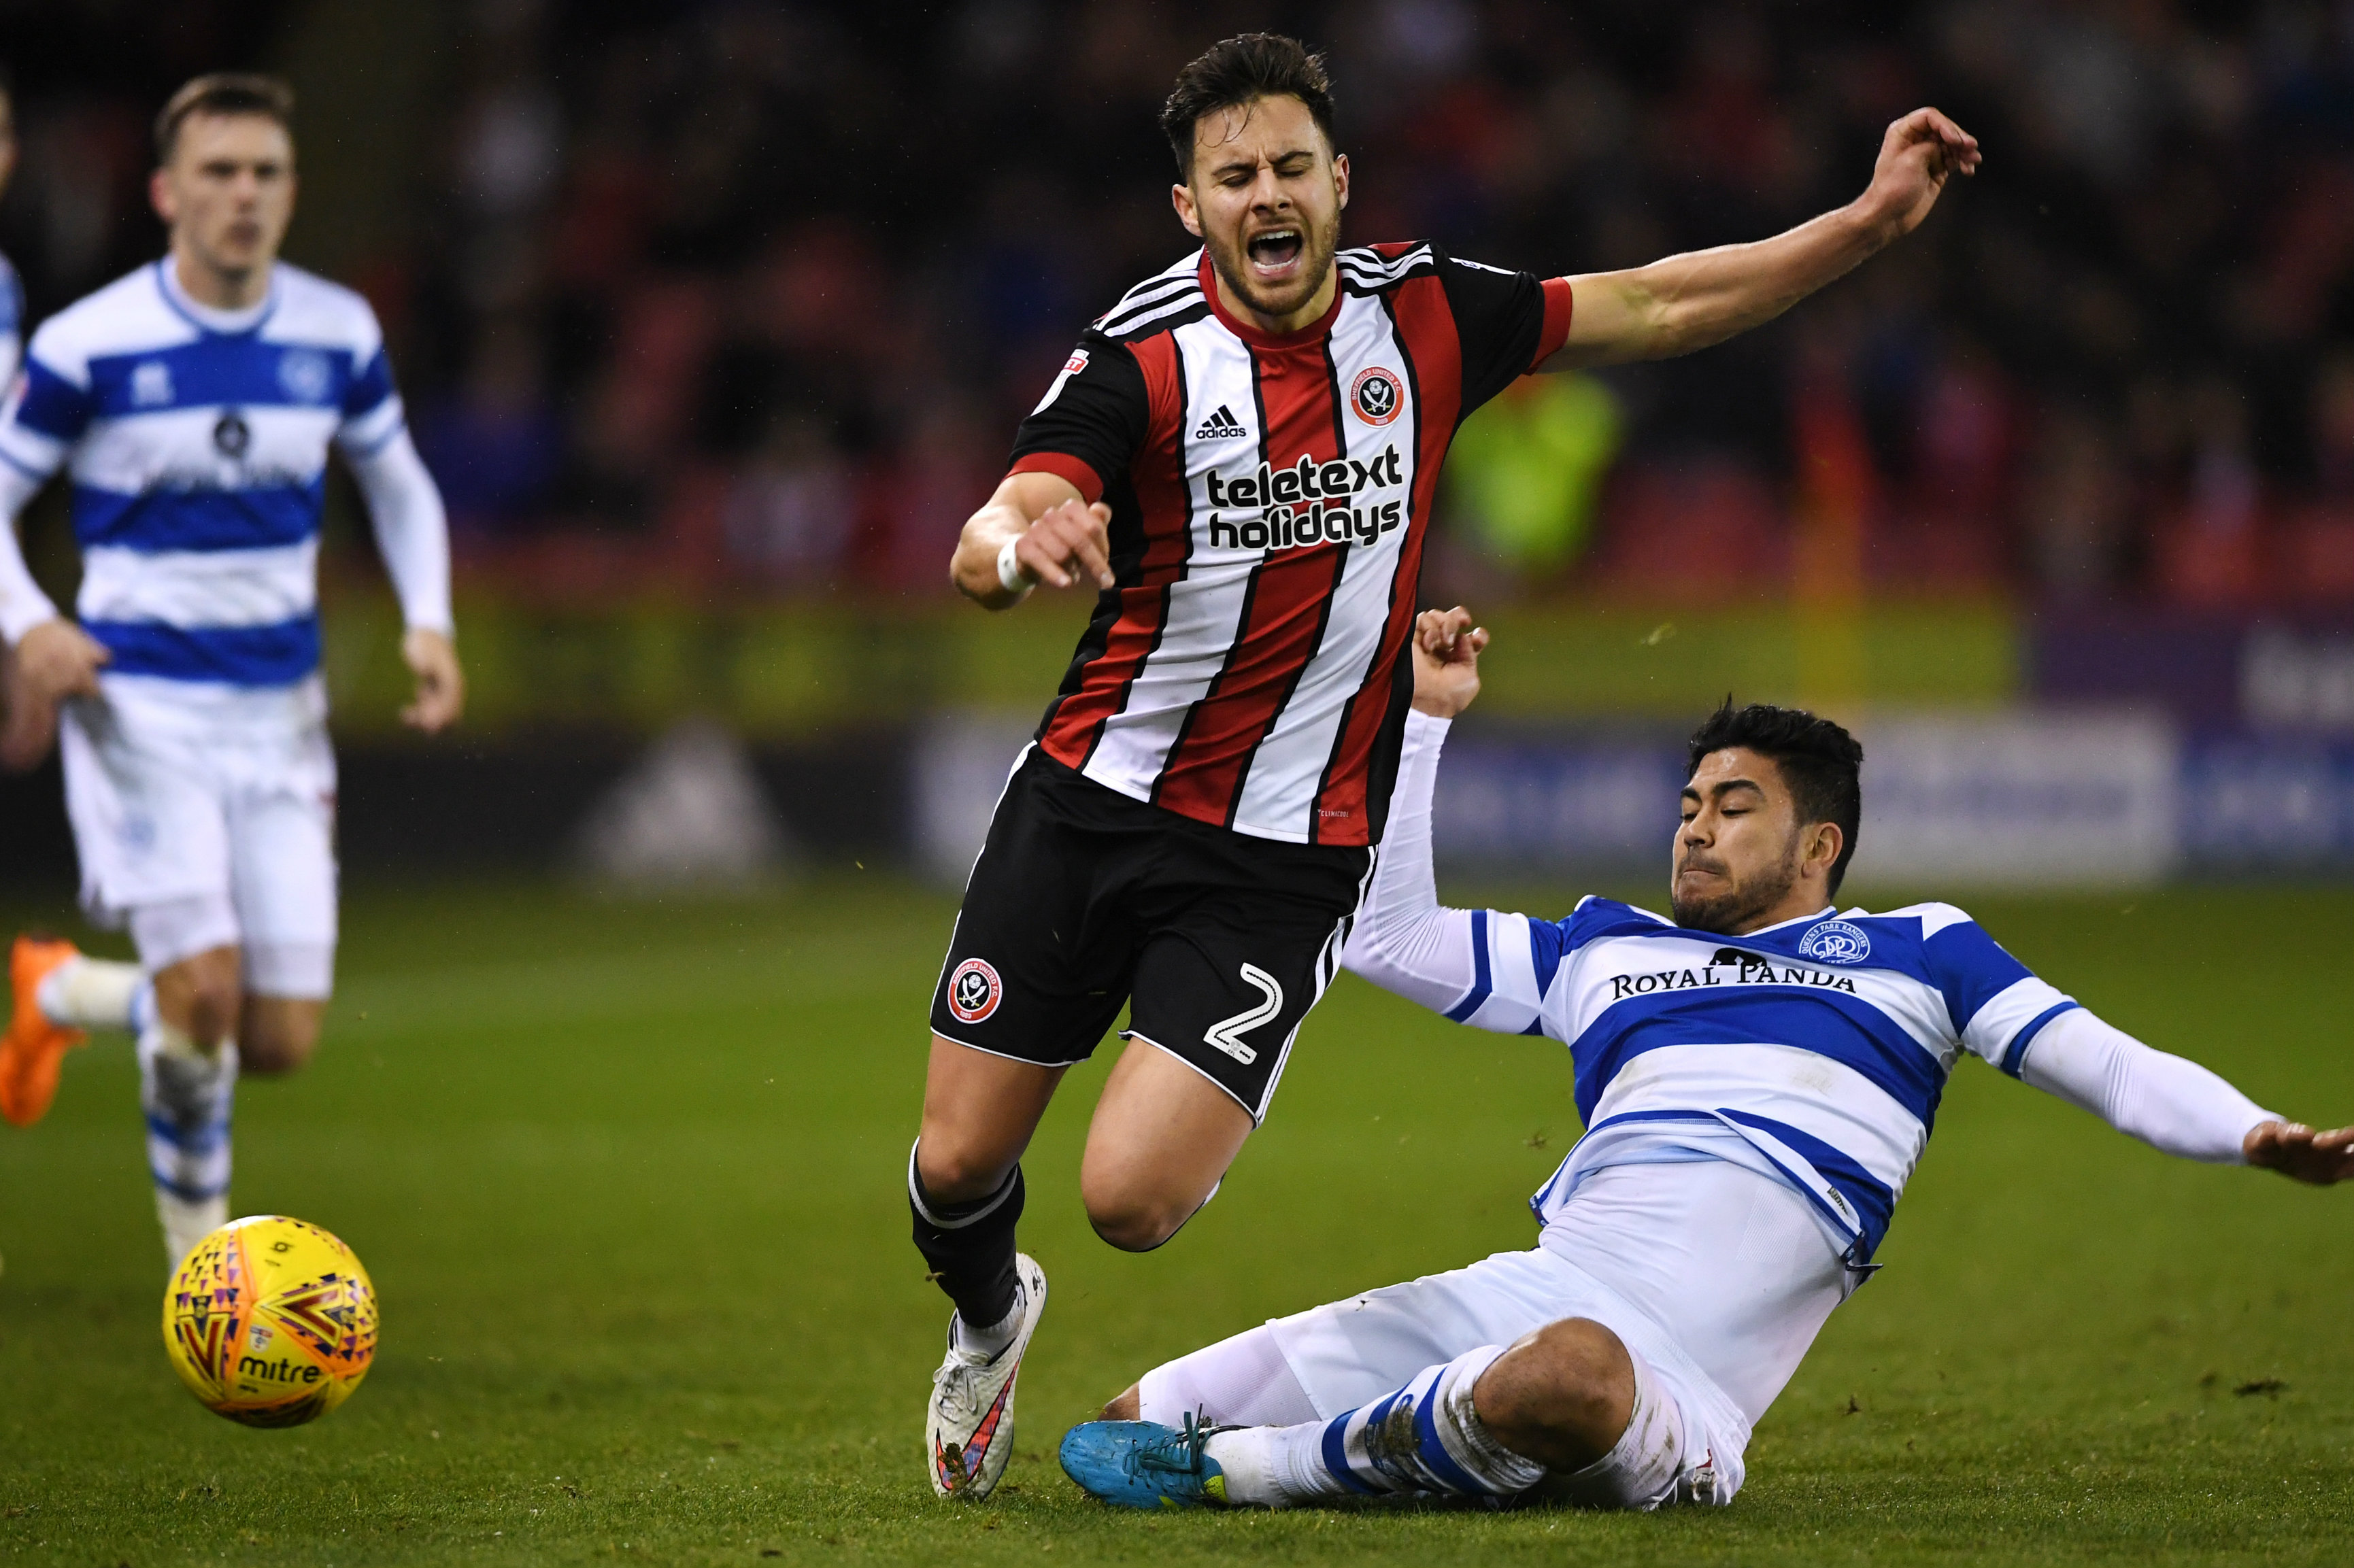 Massimo Luongo gets a tackle in on his Sheffield United opponent.